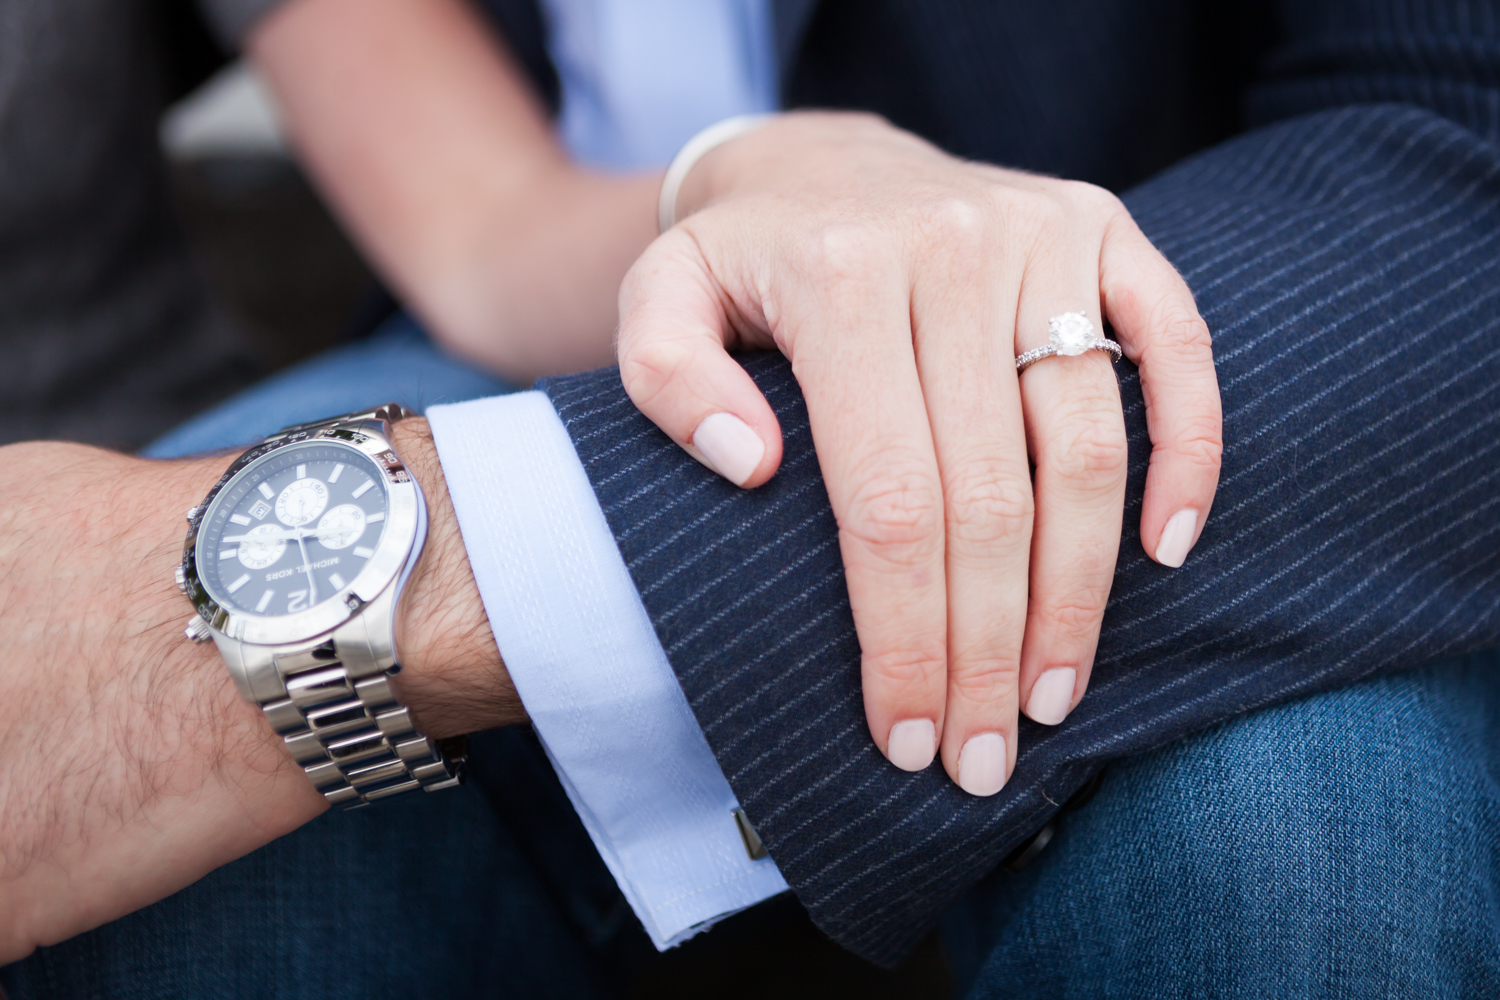 Close up of woman's hand wearing engagement ring on man's arm